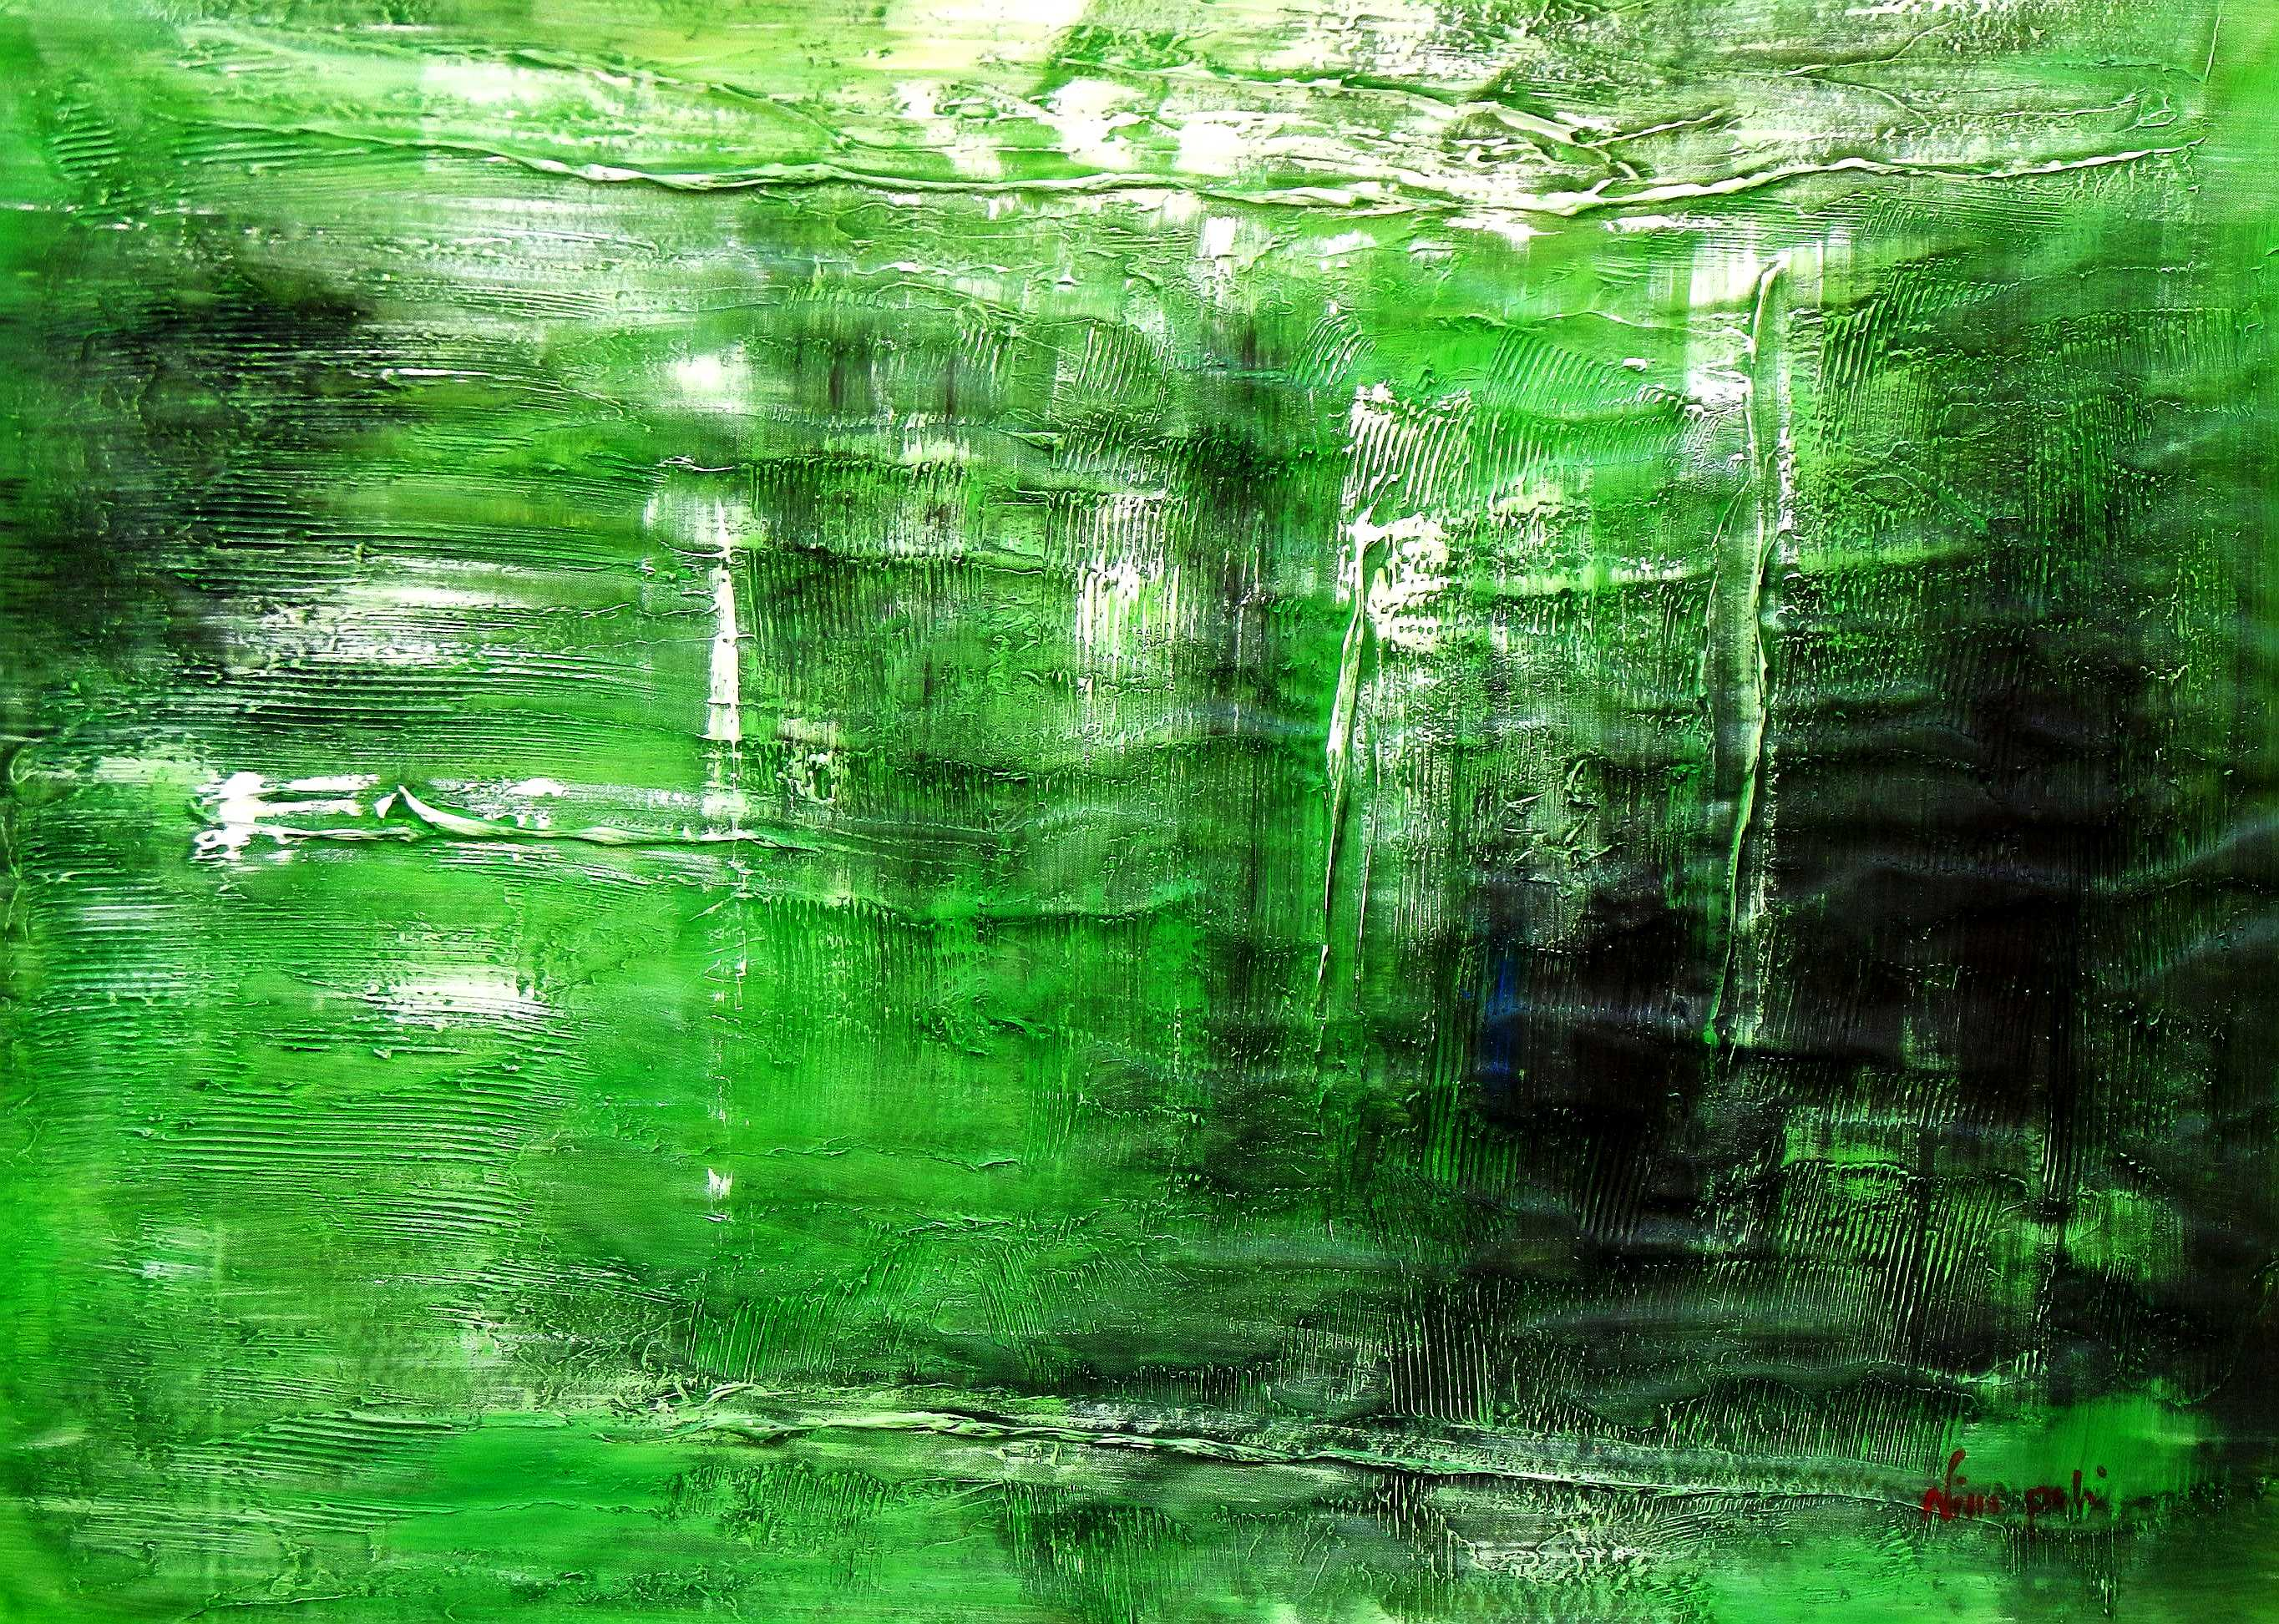 Abstract - Ireland Summer games i94987 80x110cm abstraktes Gemälde